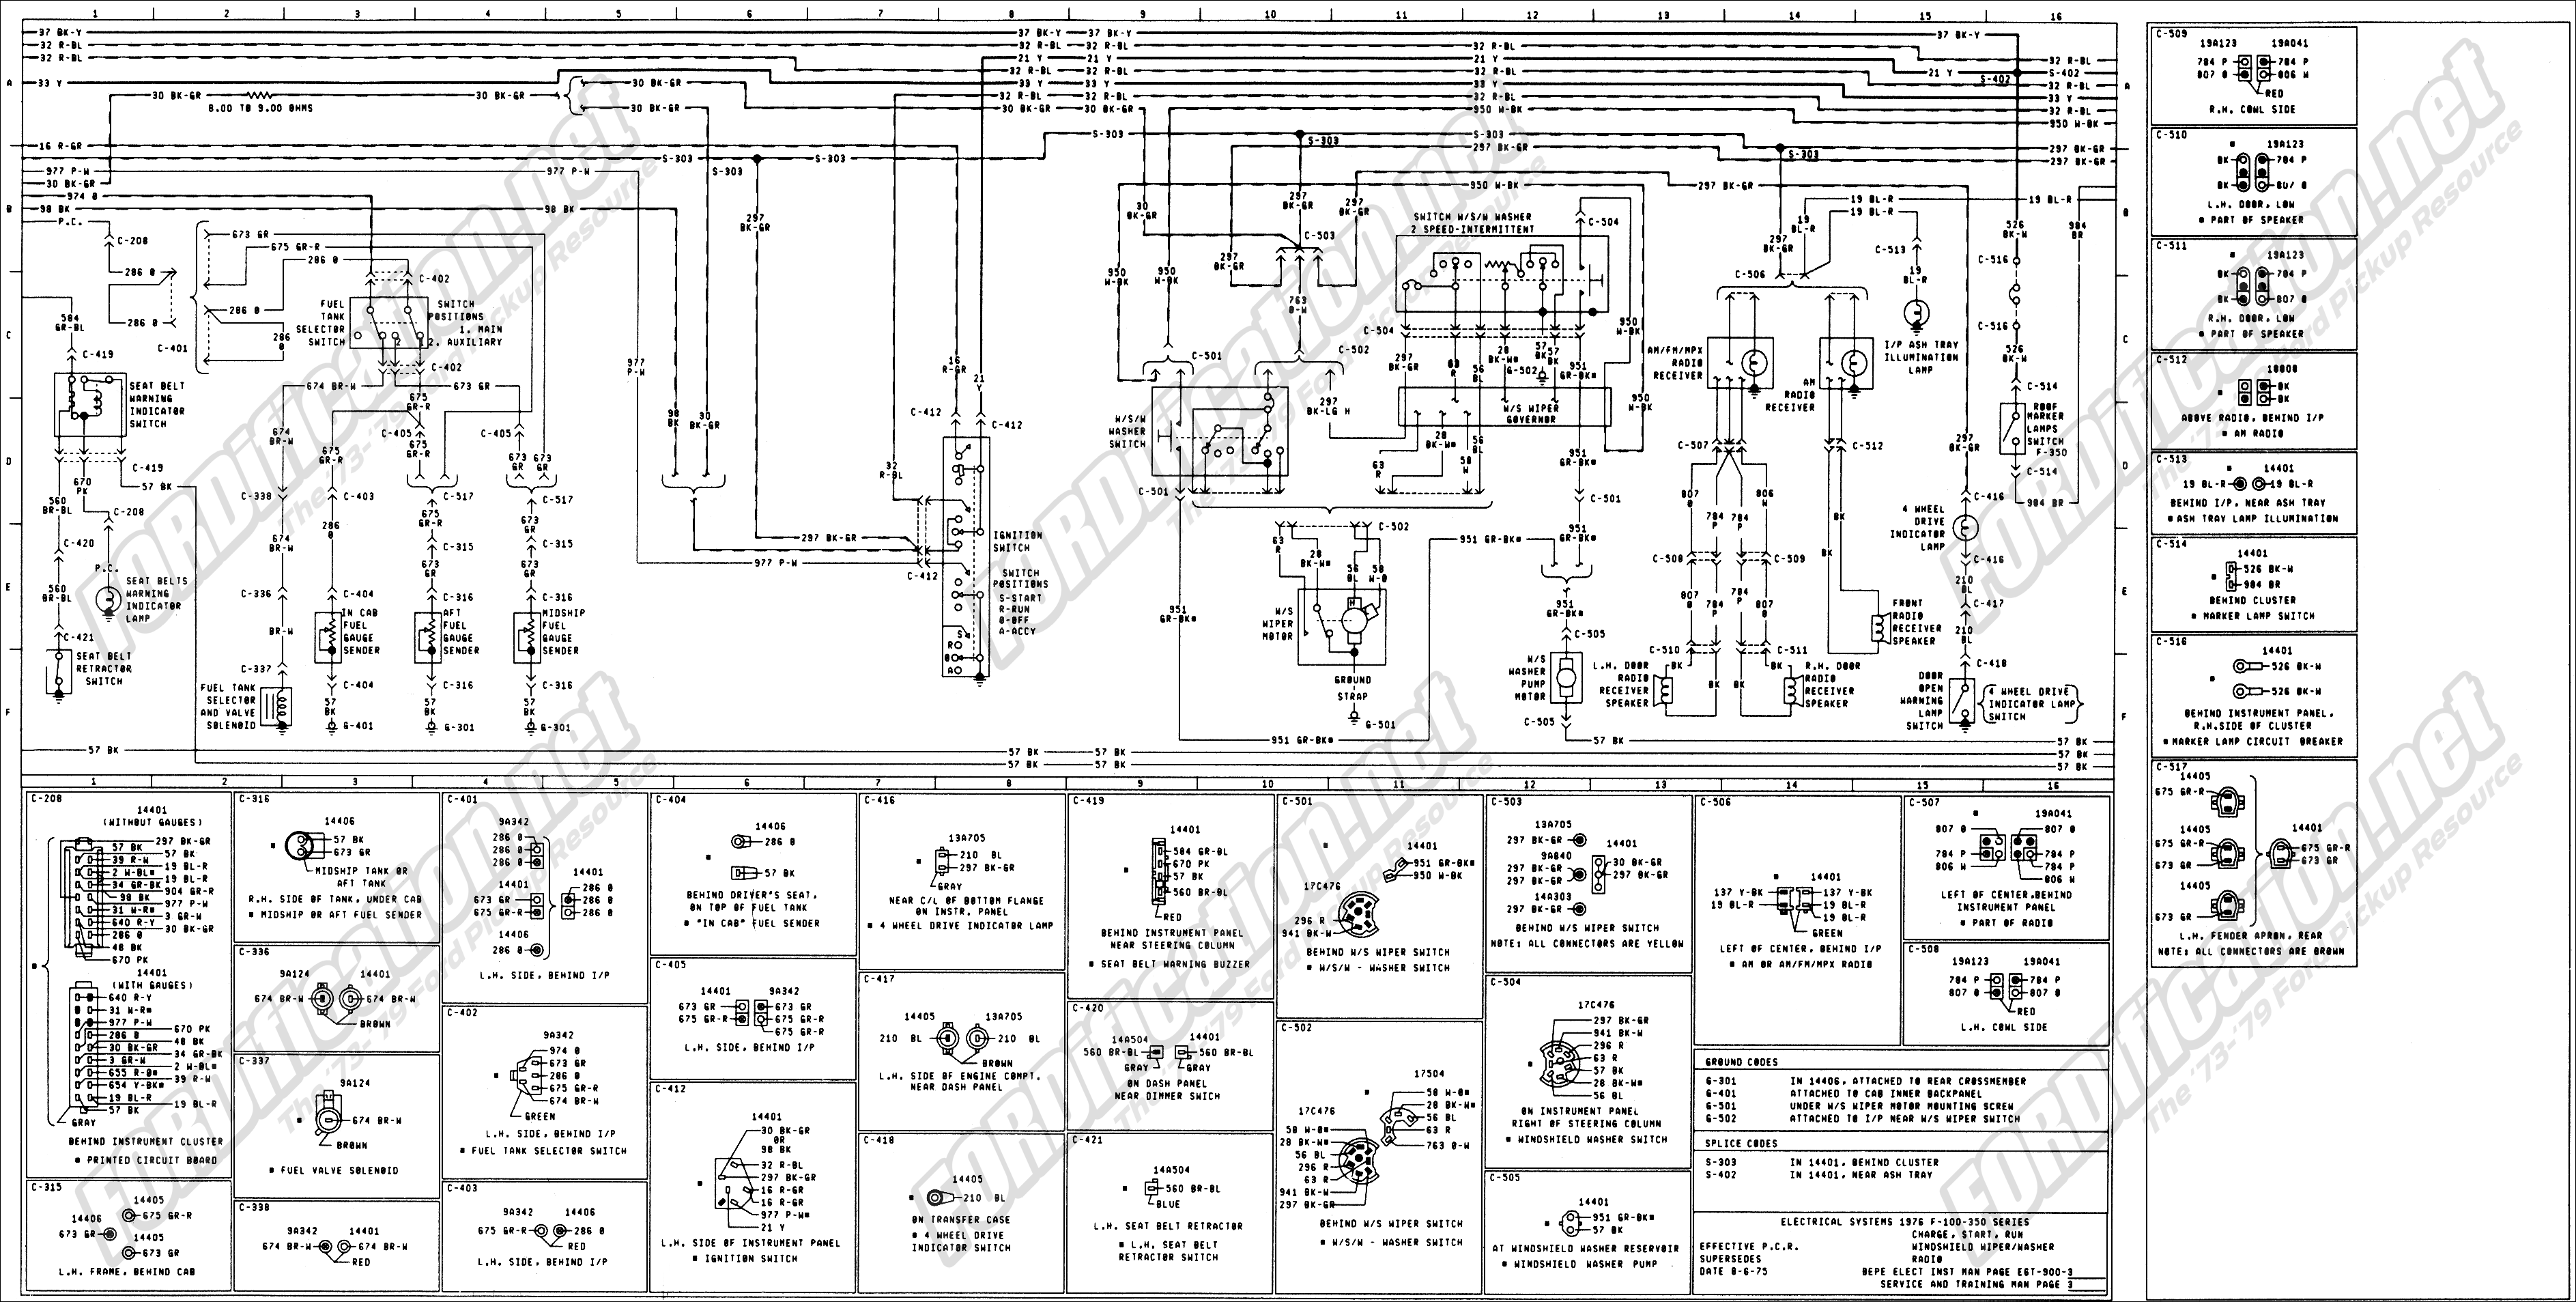 wiring_76master_3of9 1973 1979 ford truck wiring diagrams & schematics fordification net 2002 ford f250 wiring diagram at reclaimingppi.co